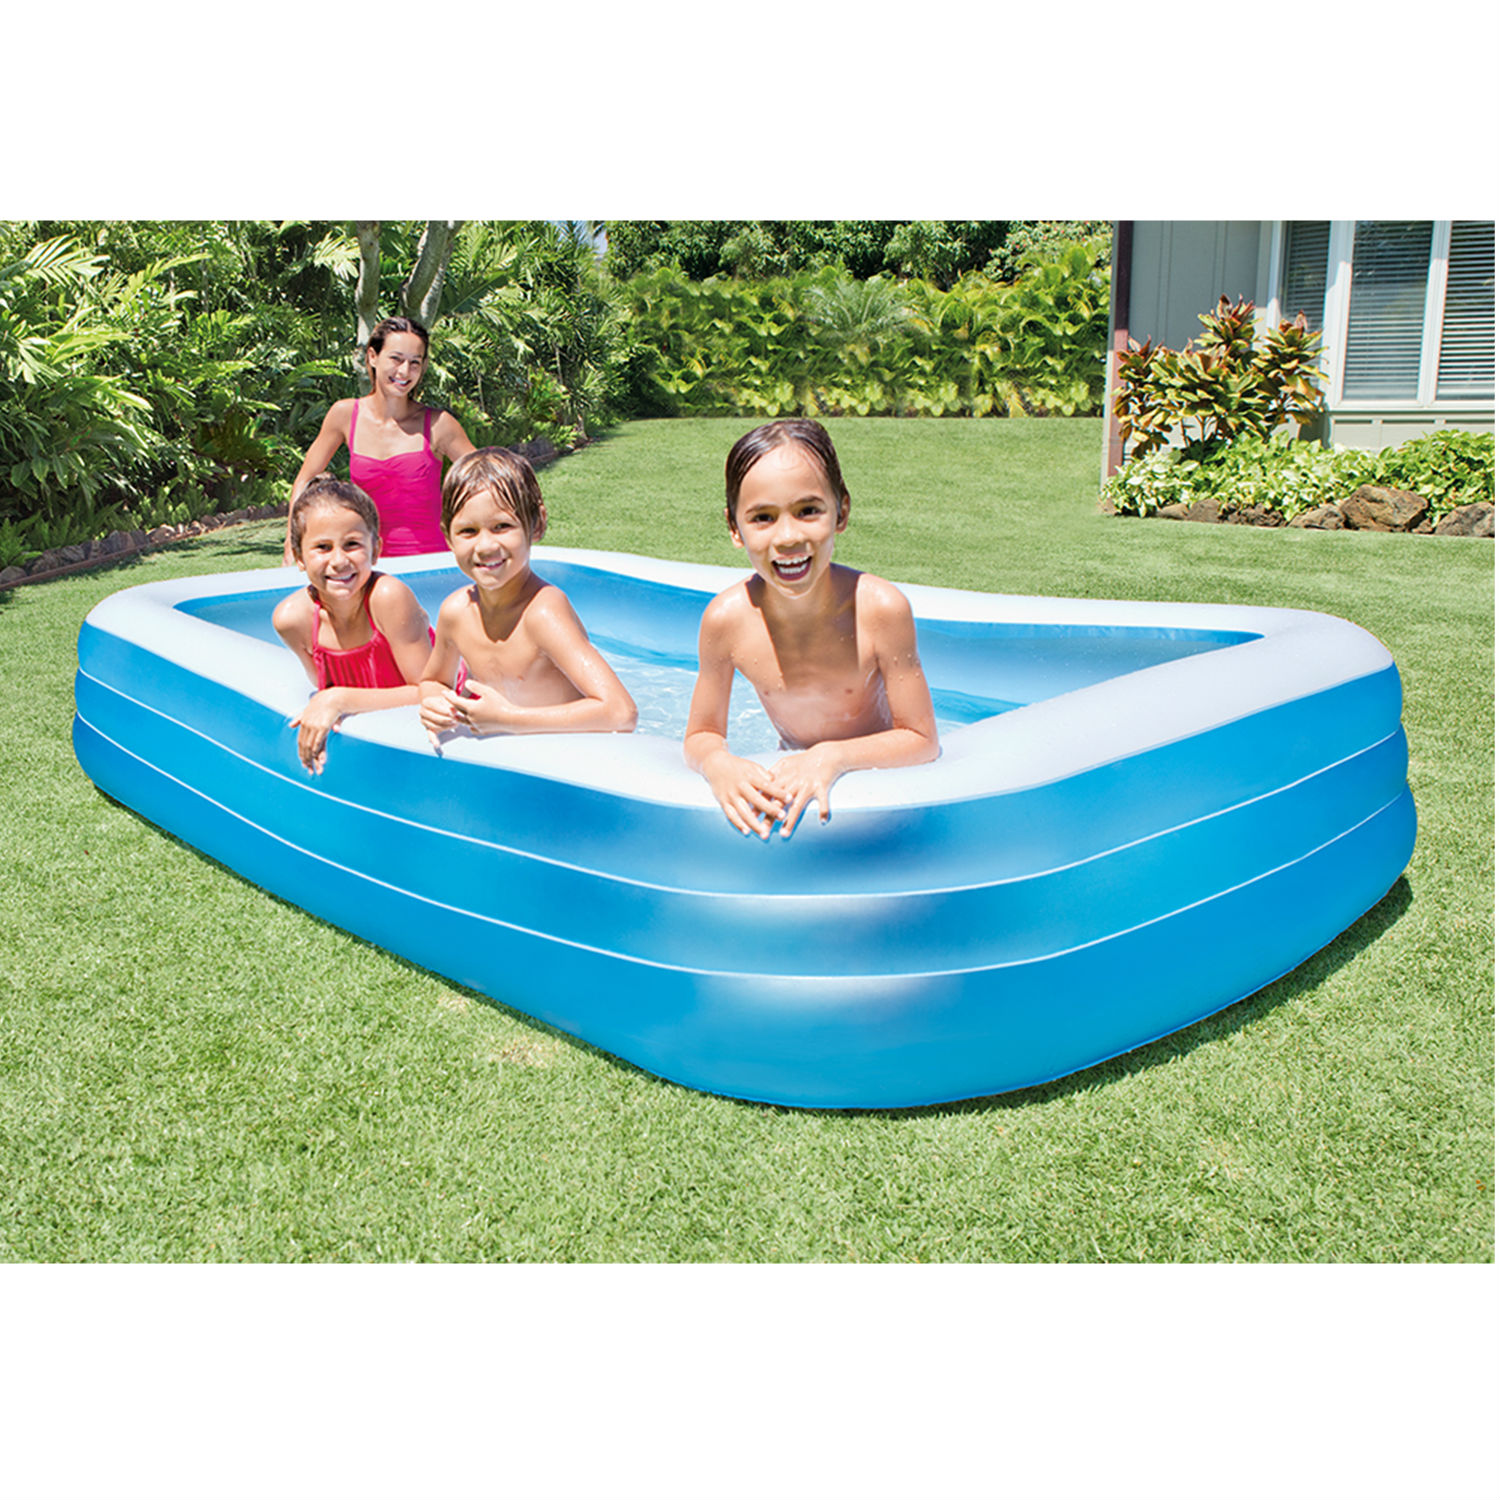 Aldi Intex Pool Intex Inflatable Swim Center Family Lounge Pool 120